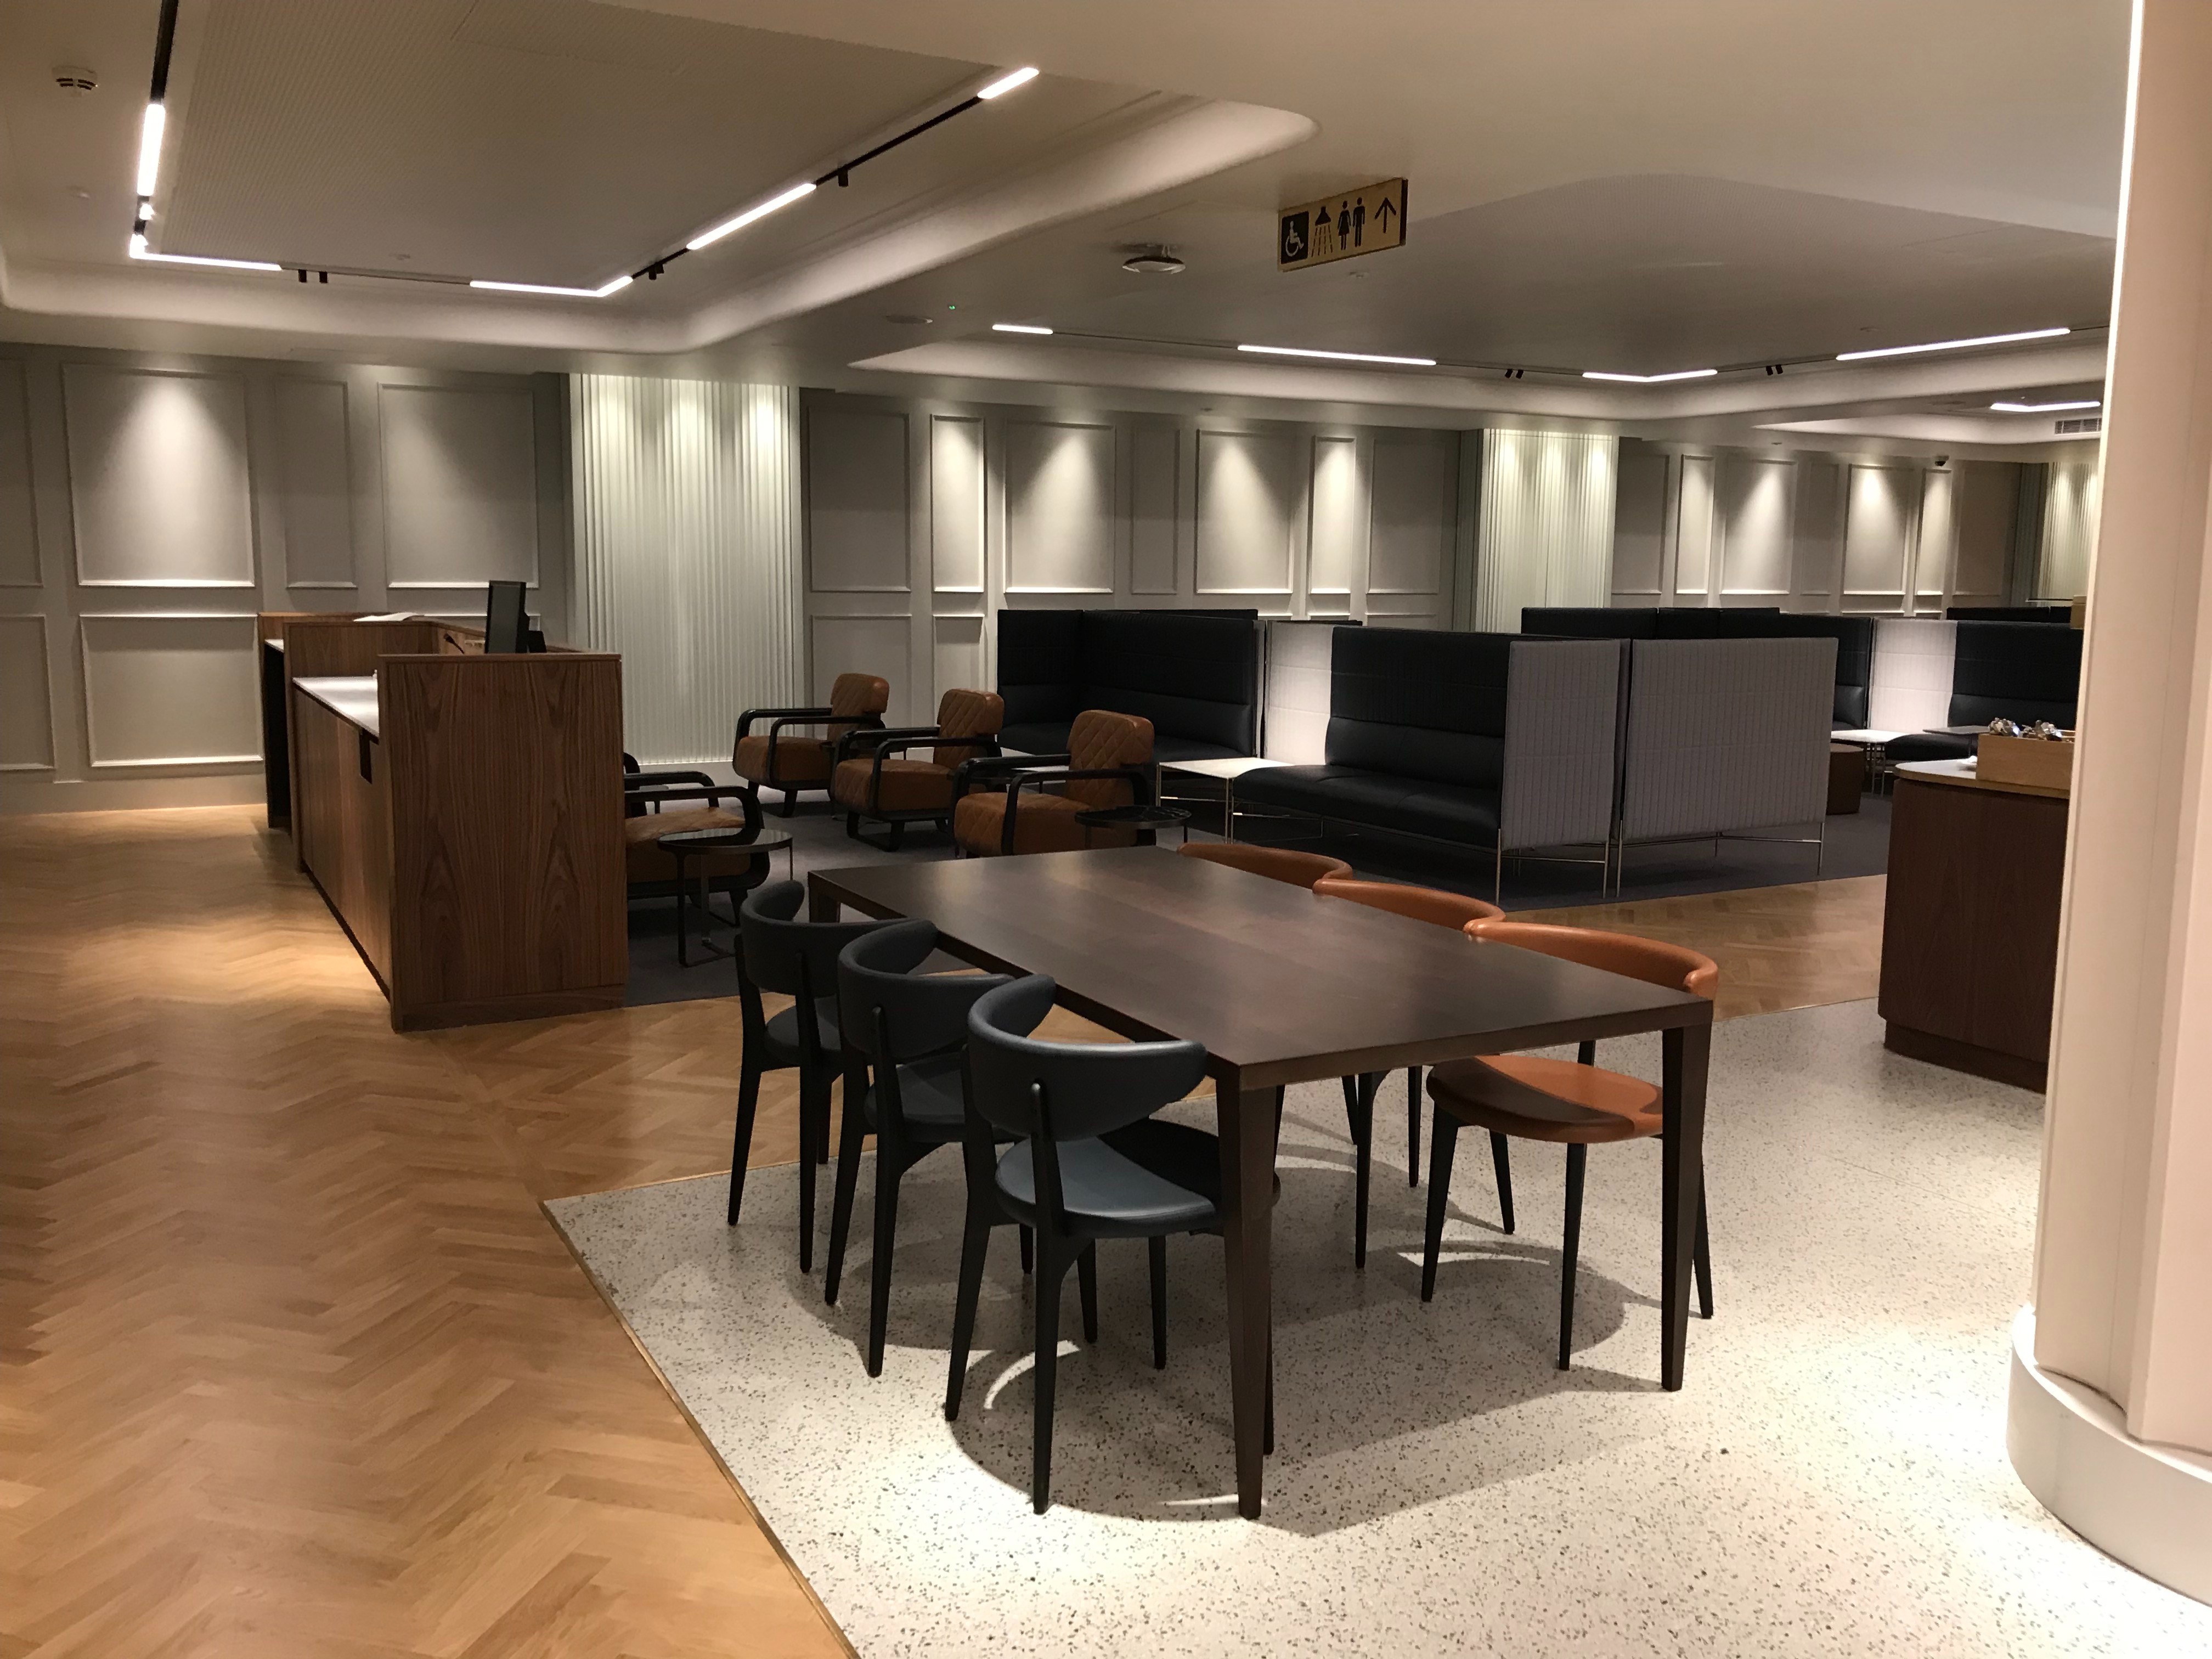 Qantas London Lounge tables and chairs